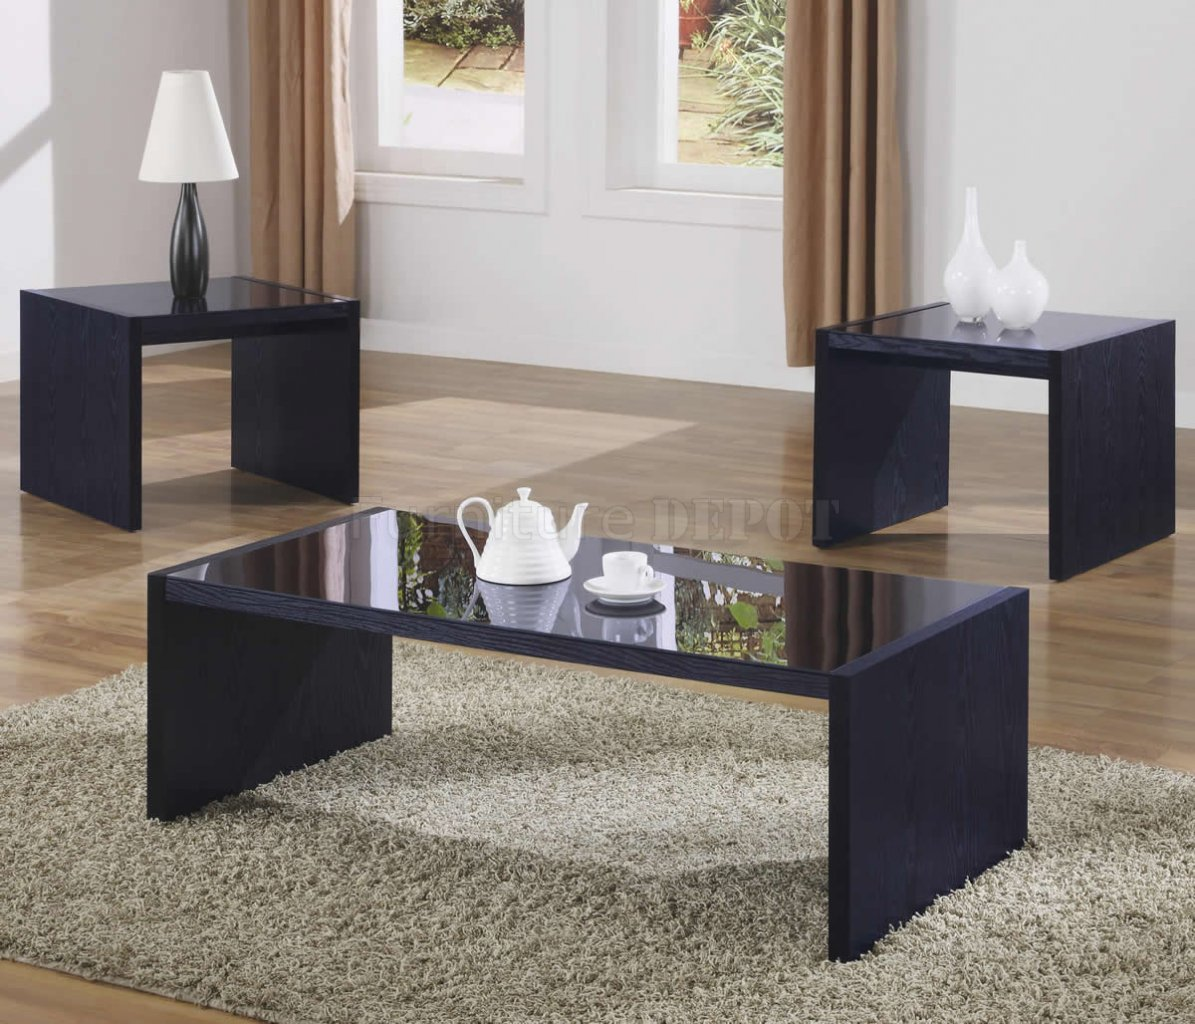 Black-Modern-Coffee-Tables-use-the-largest-as-a-coffee-table-or-group-Black-Modern-Coffee-Tables-them-for-a-graphic-display (Image 7 of 8)